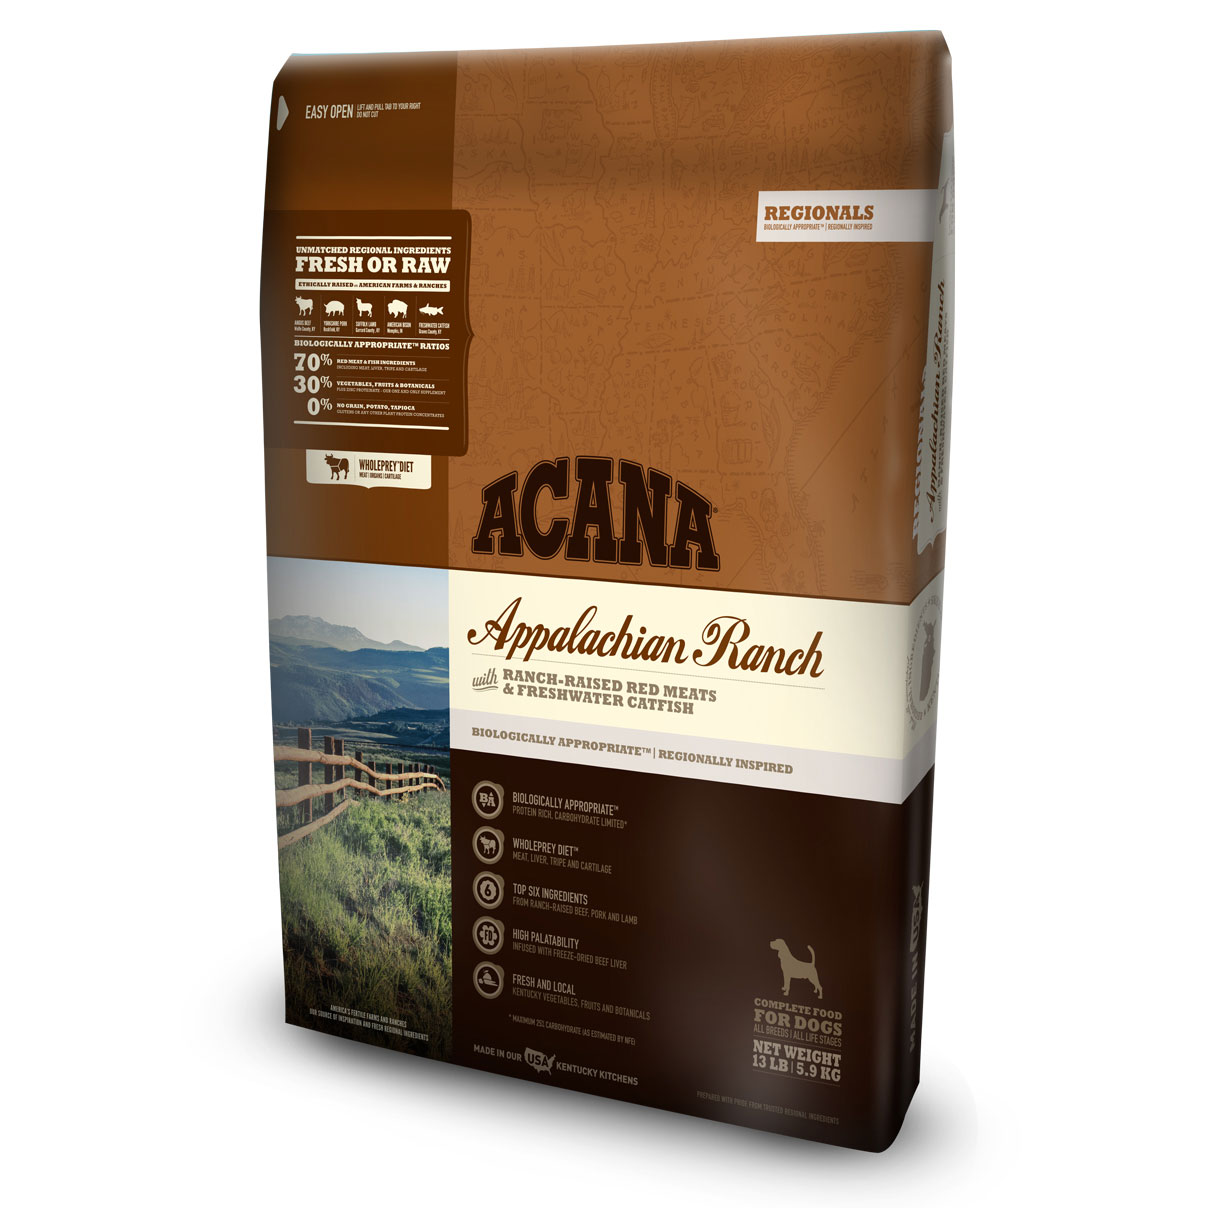 ACANA® Regionals Appalachian Ranch Dog Food I011355b